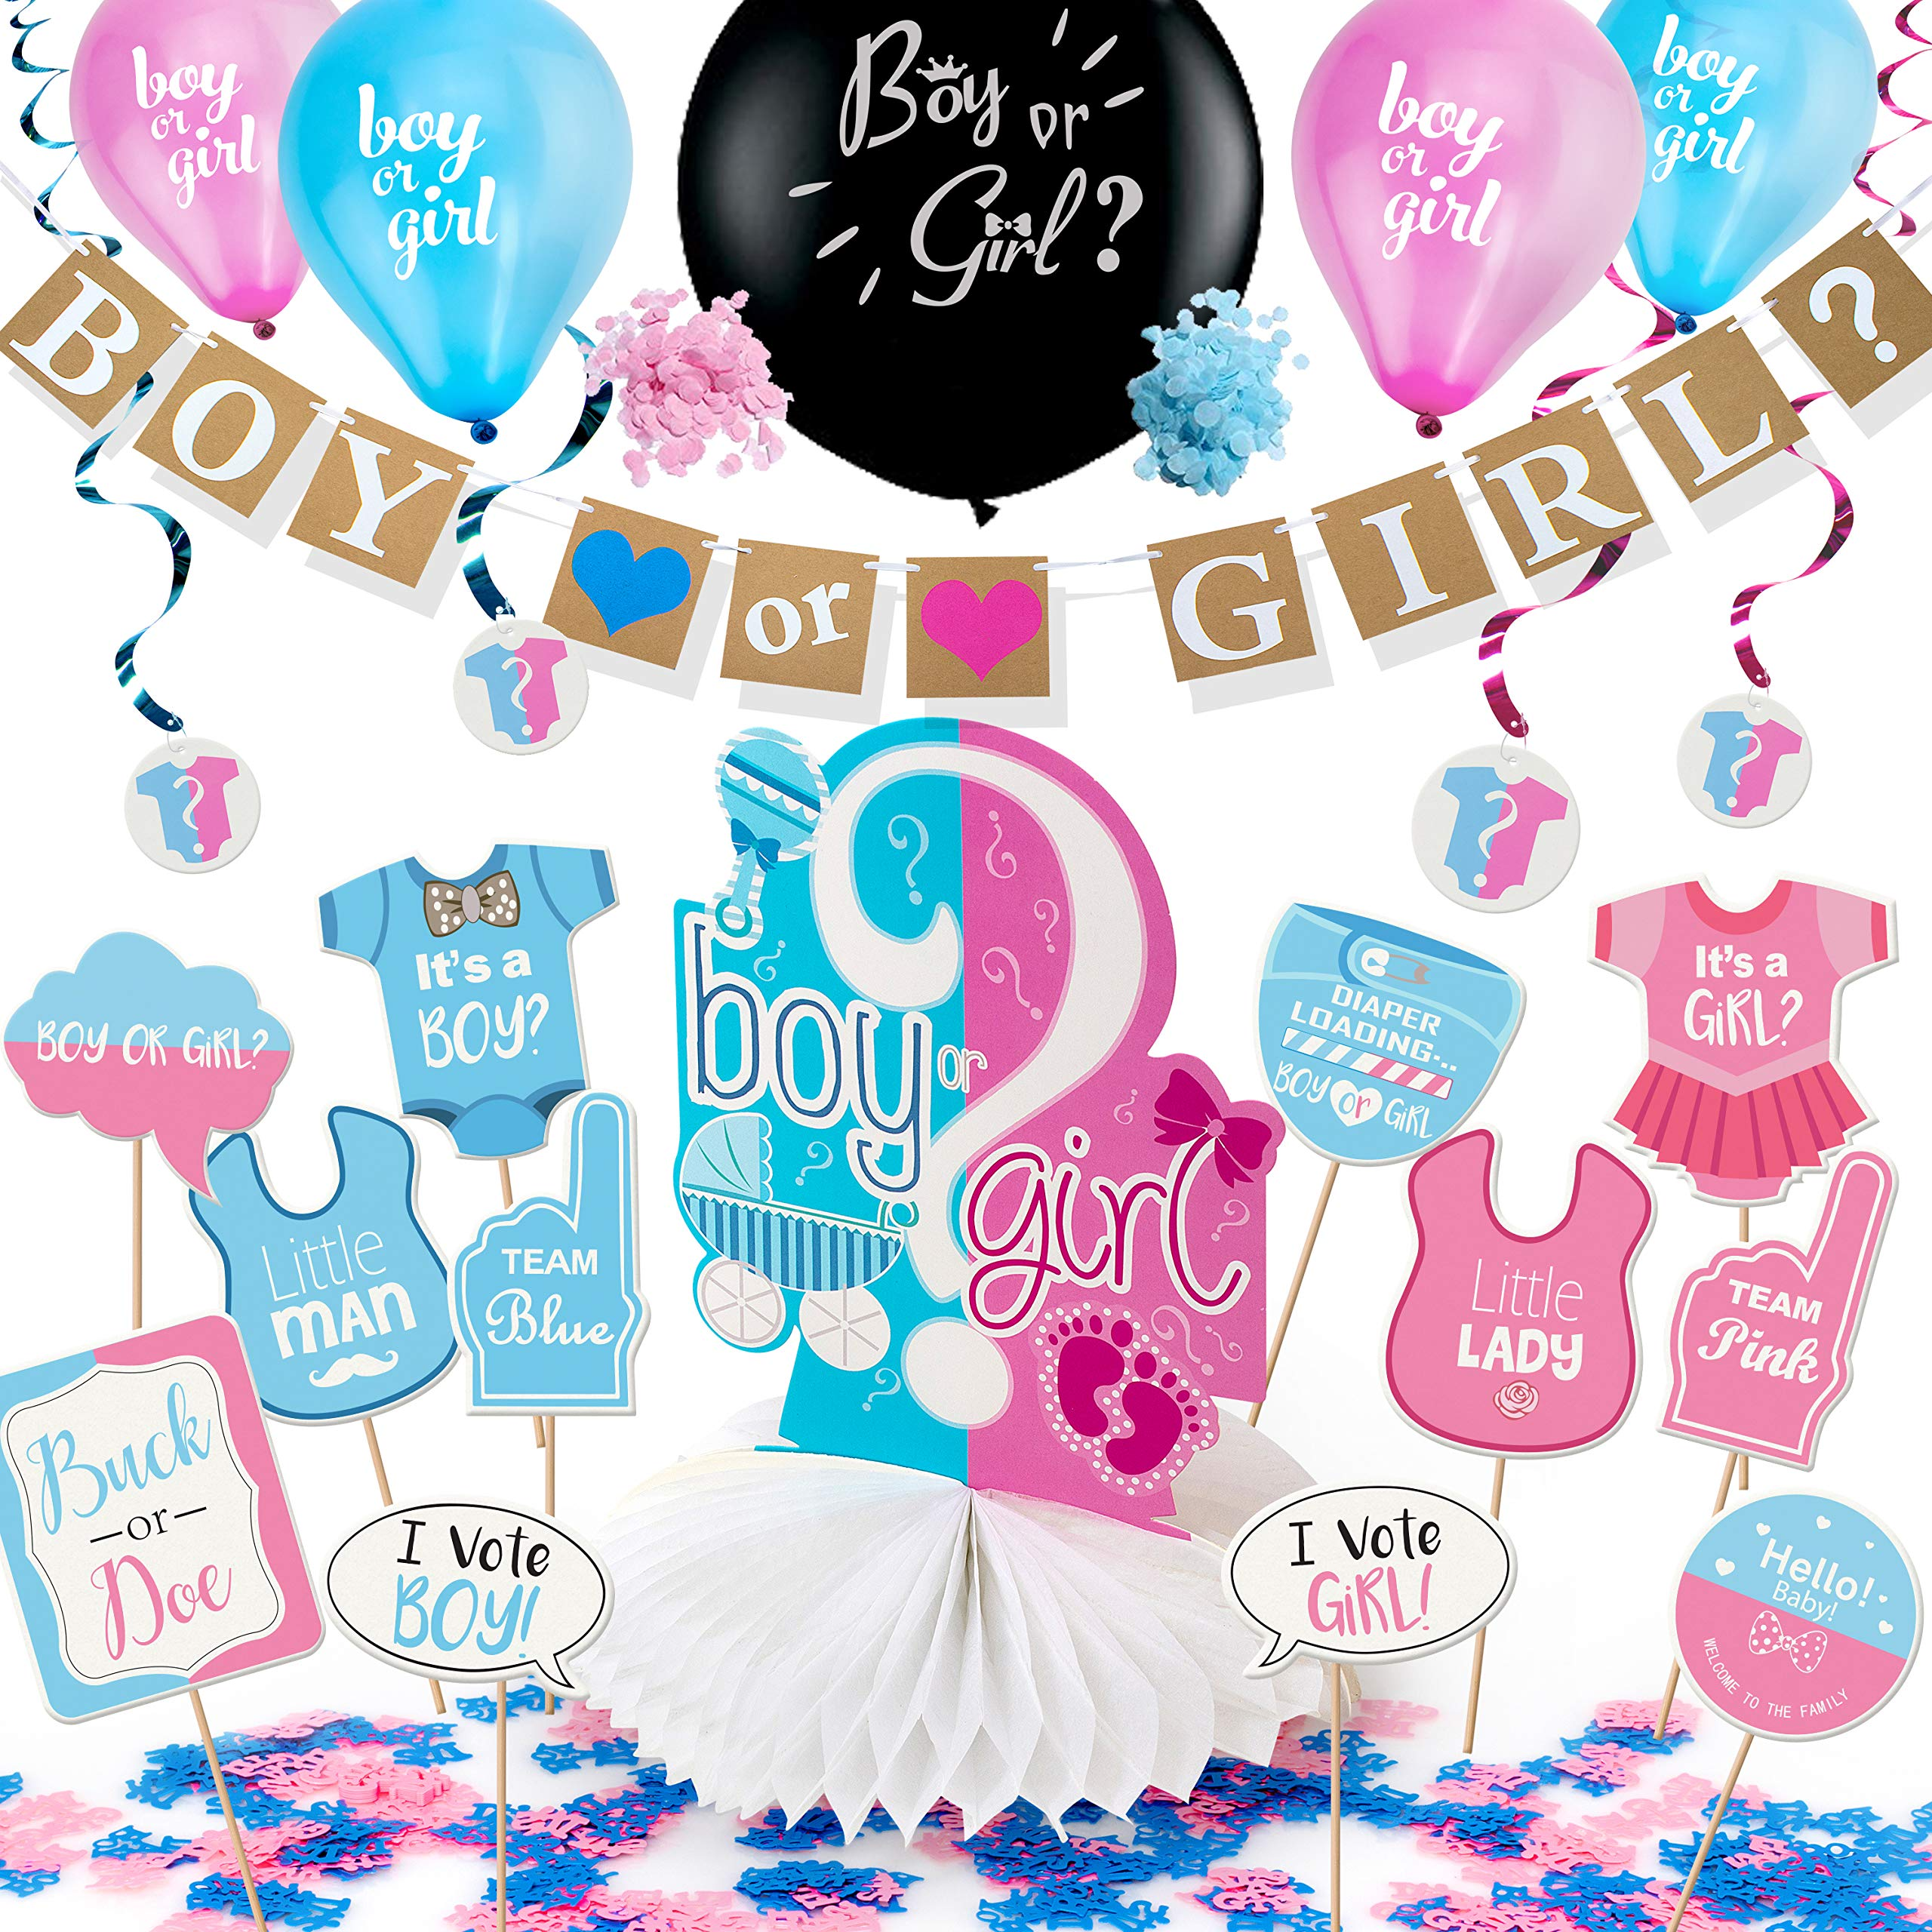 Gender Reveal Party Supplies Pack by ARTIT with 36' Big Black Balloon, Pink and Blue Confetti - Baby Shower Decorations Kit with Boy or Girl Favors - Banner Centerpiece Swirls Tablecloth Photo Props